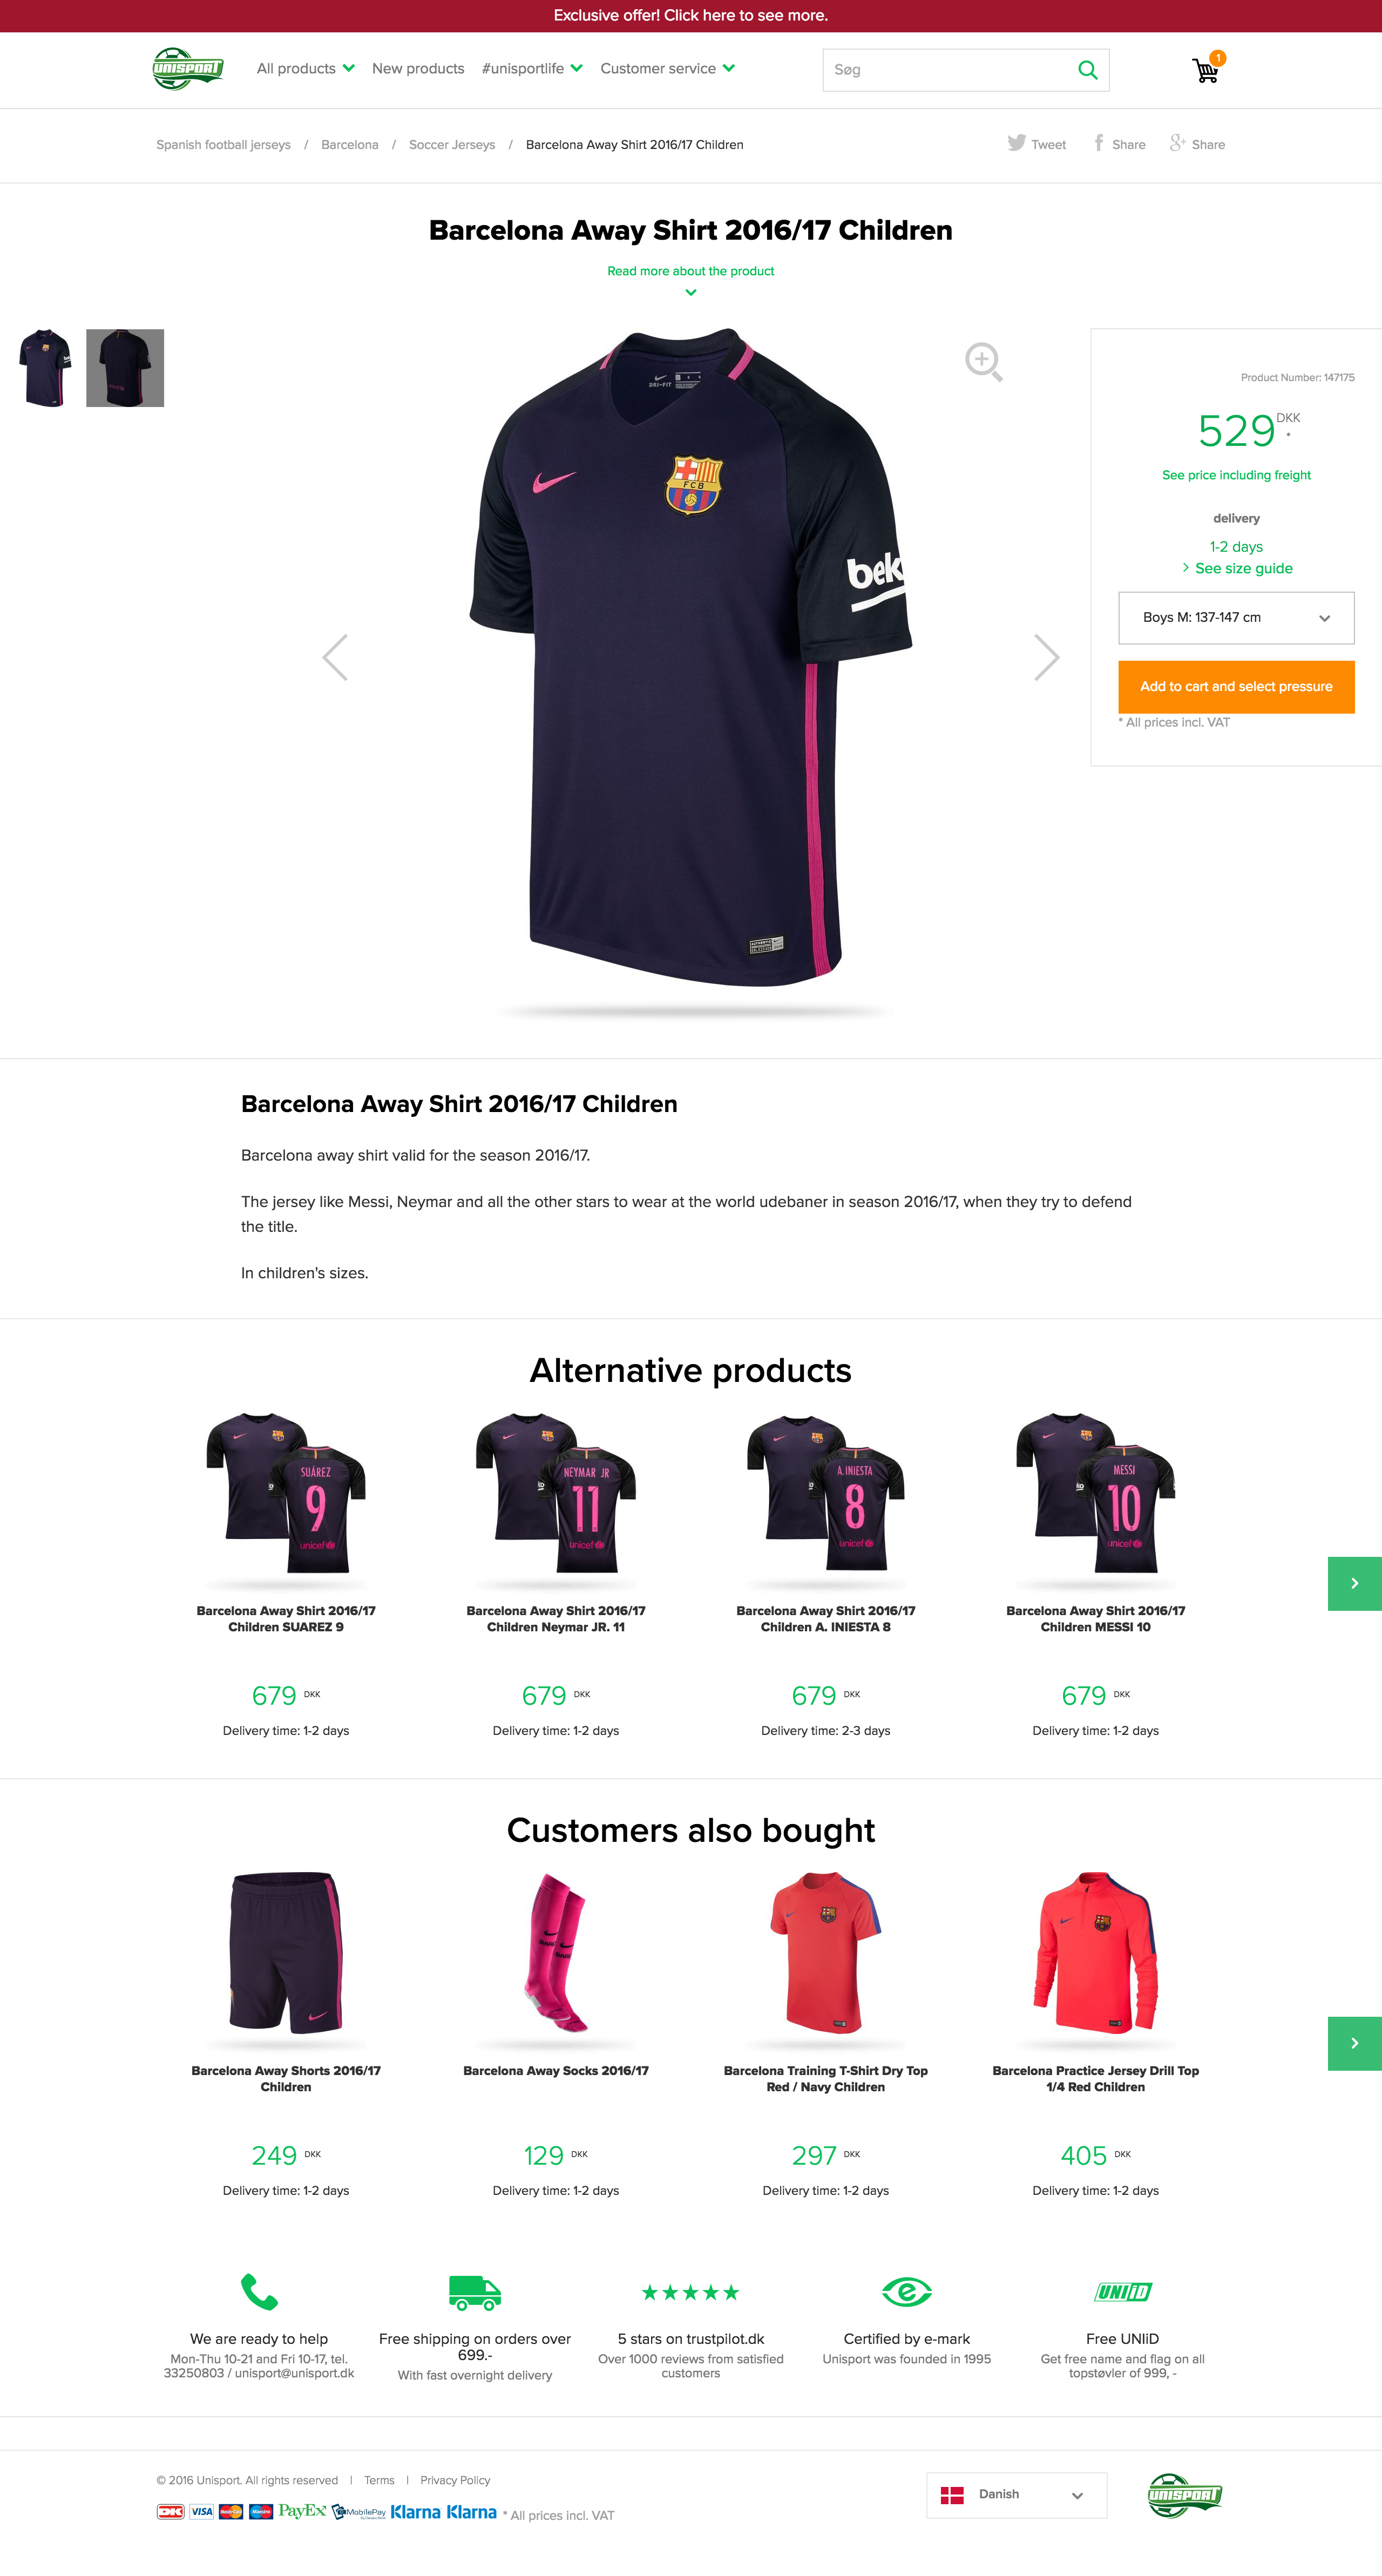 Unisportstores.com product page with both recommendations under the product.